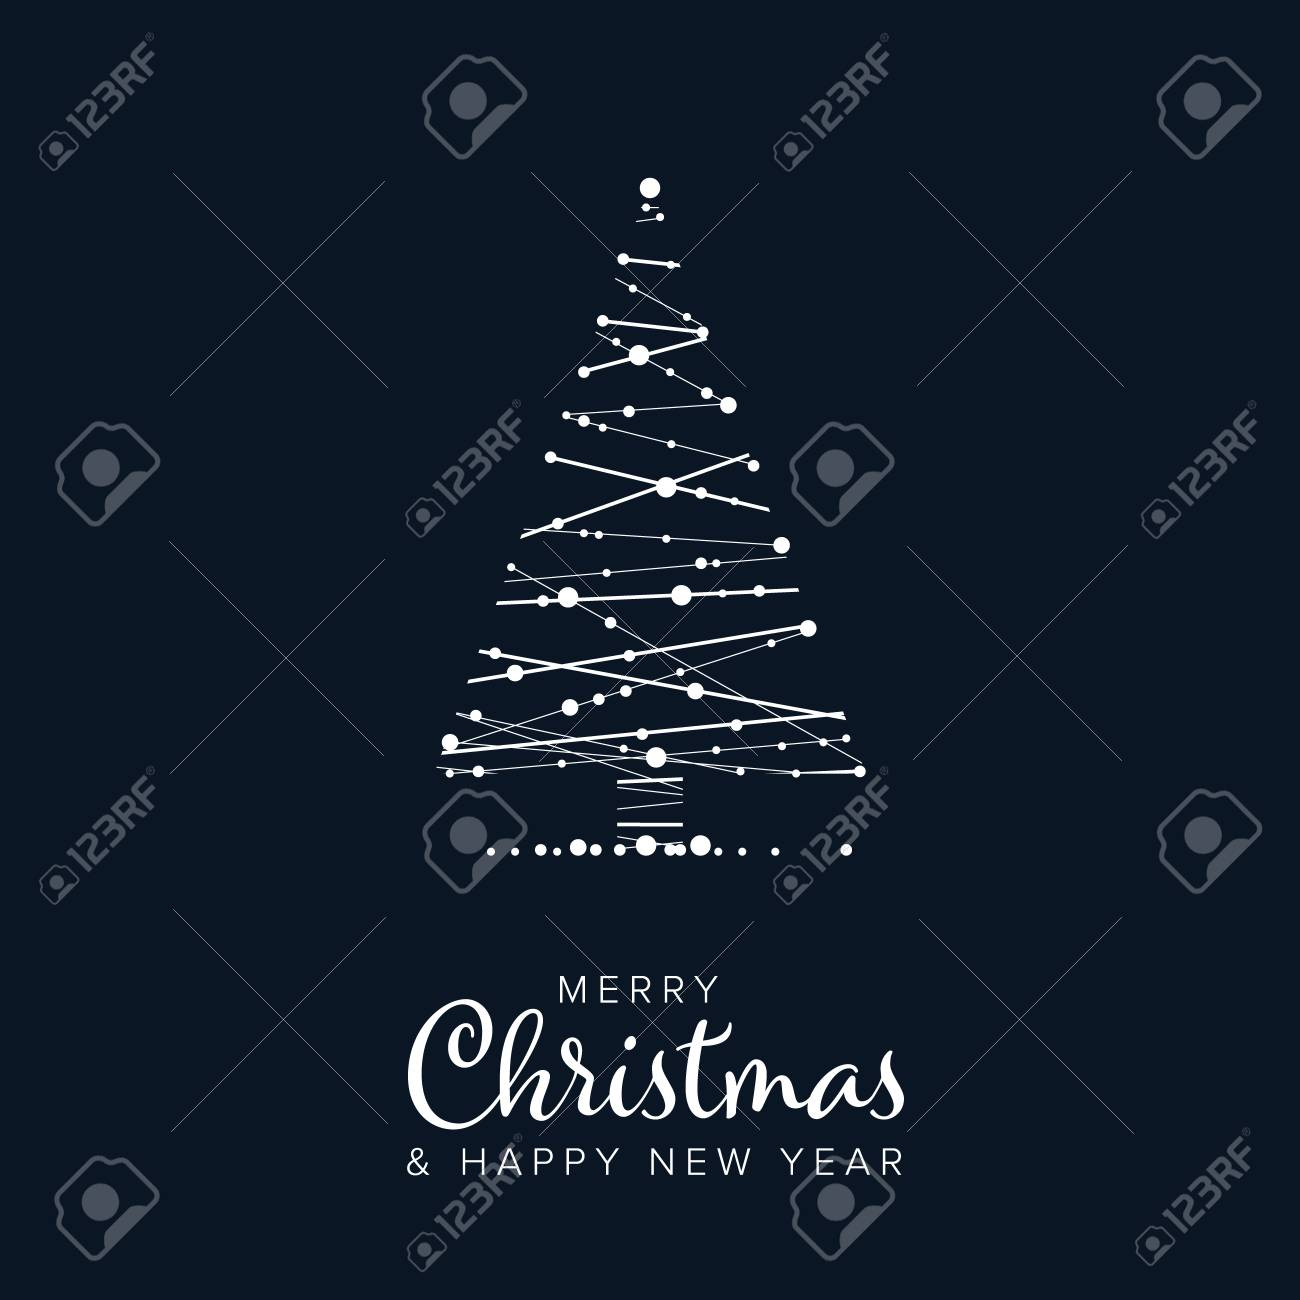 Minimalist Christmas flyer card temlate with abstract christmas tree on a dark blue background - 118172537